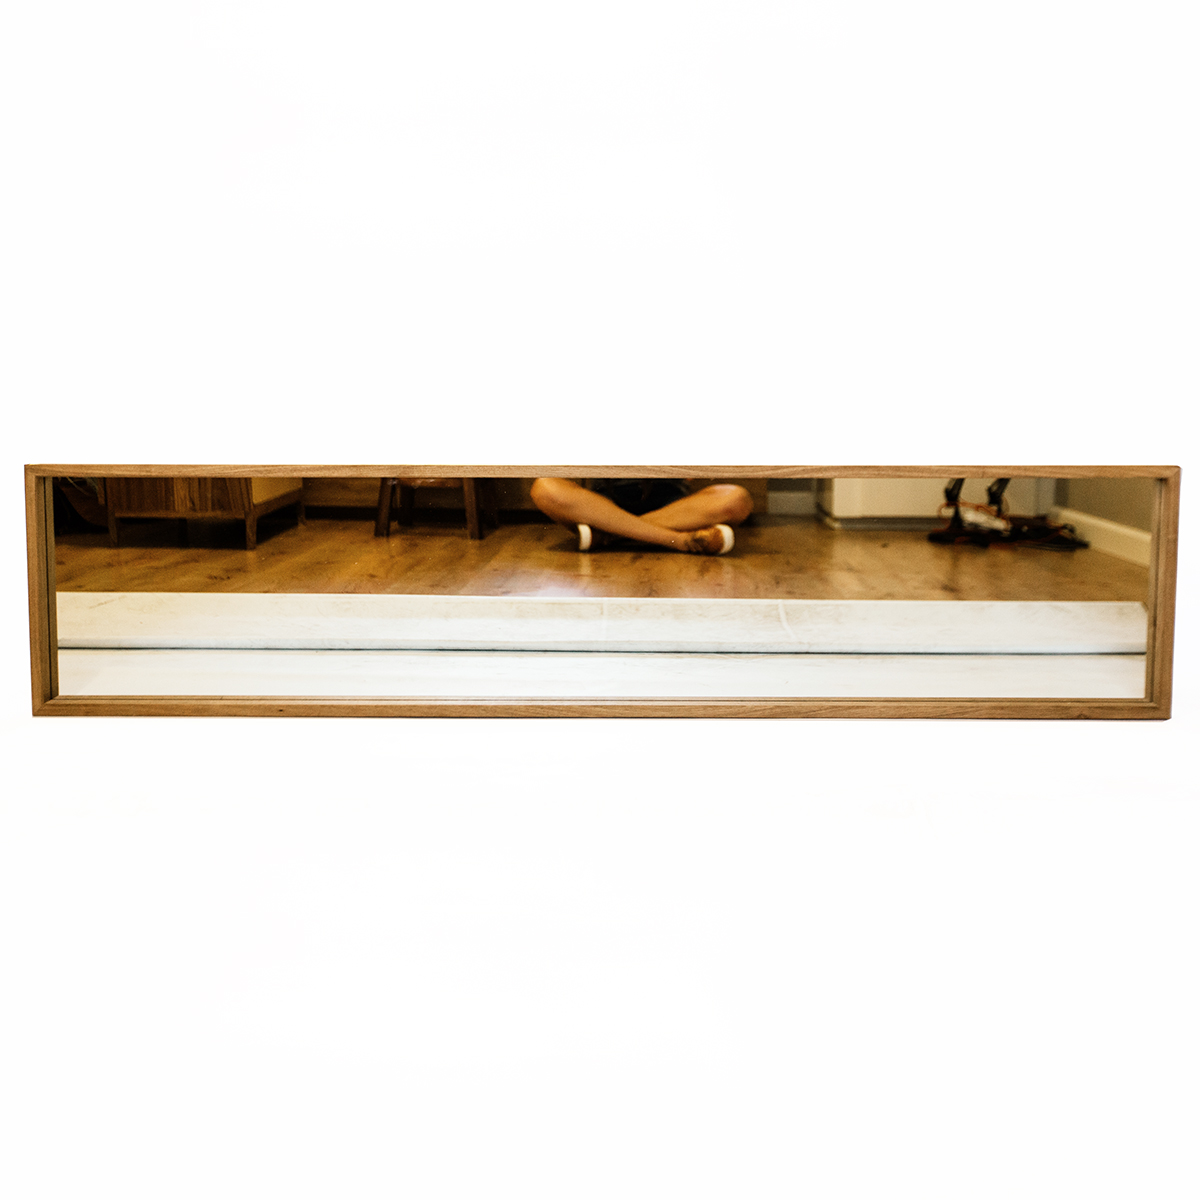 Live Simple | Kiaat Mirror | 40cm x 1.8m